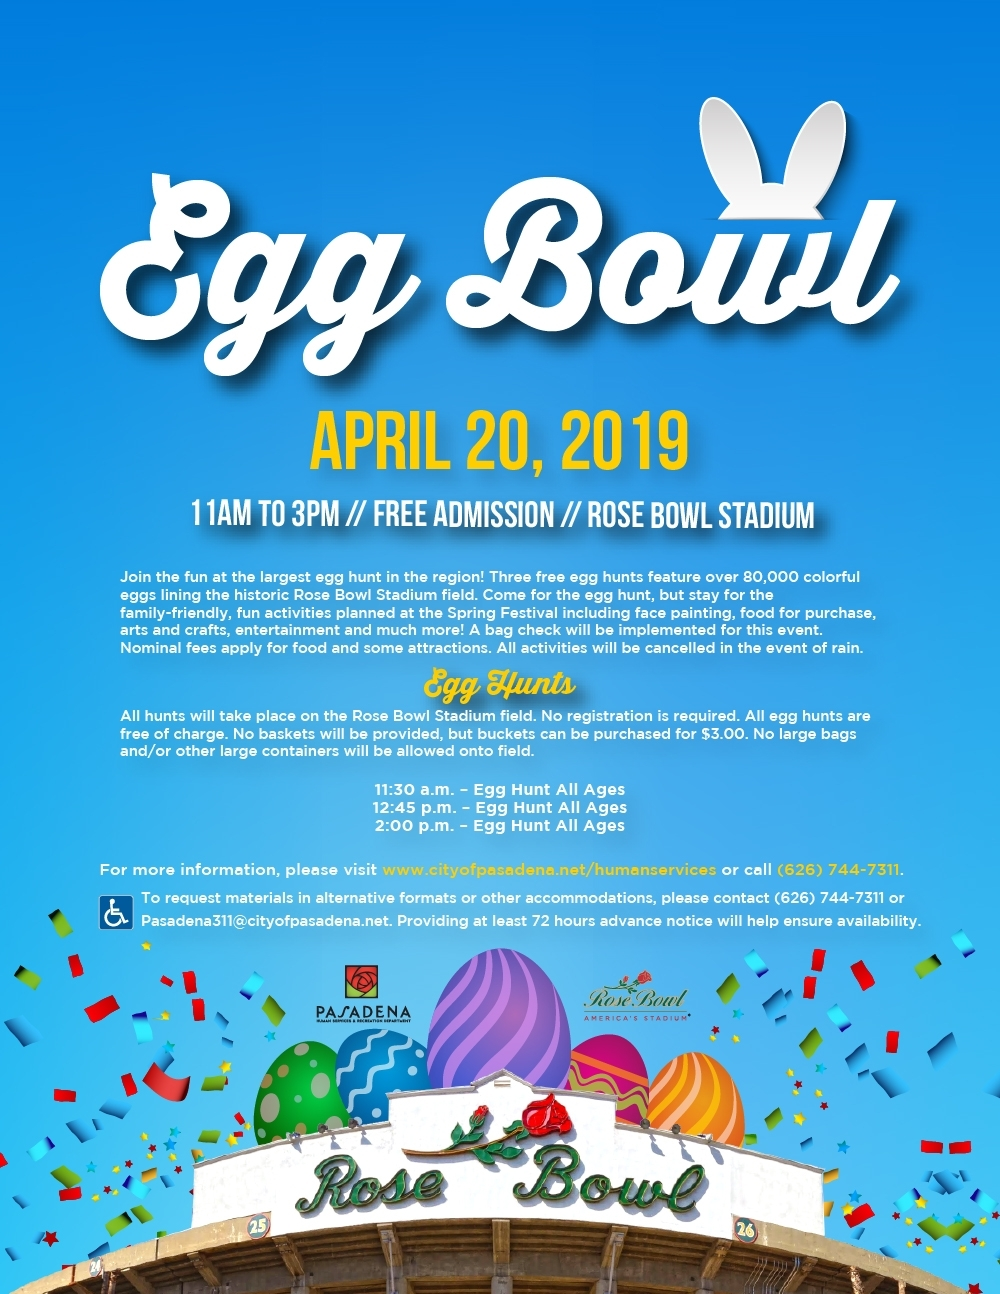 Egg Bowl – Human Services & Recreation Department throughout Graphic Organizer For Schedule From Monday To Sunday 5 Am To 9 Pm